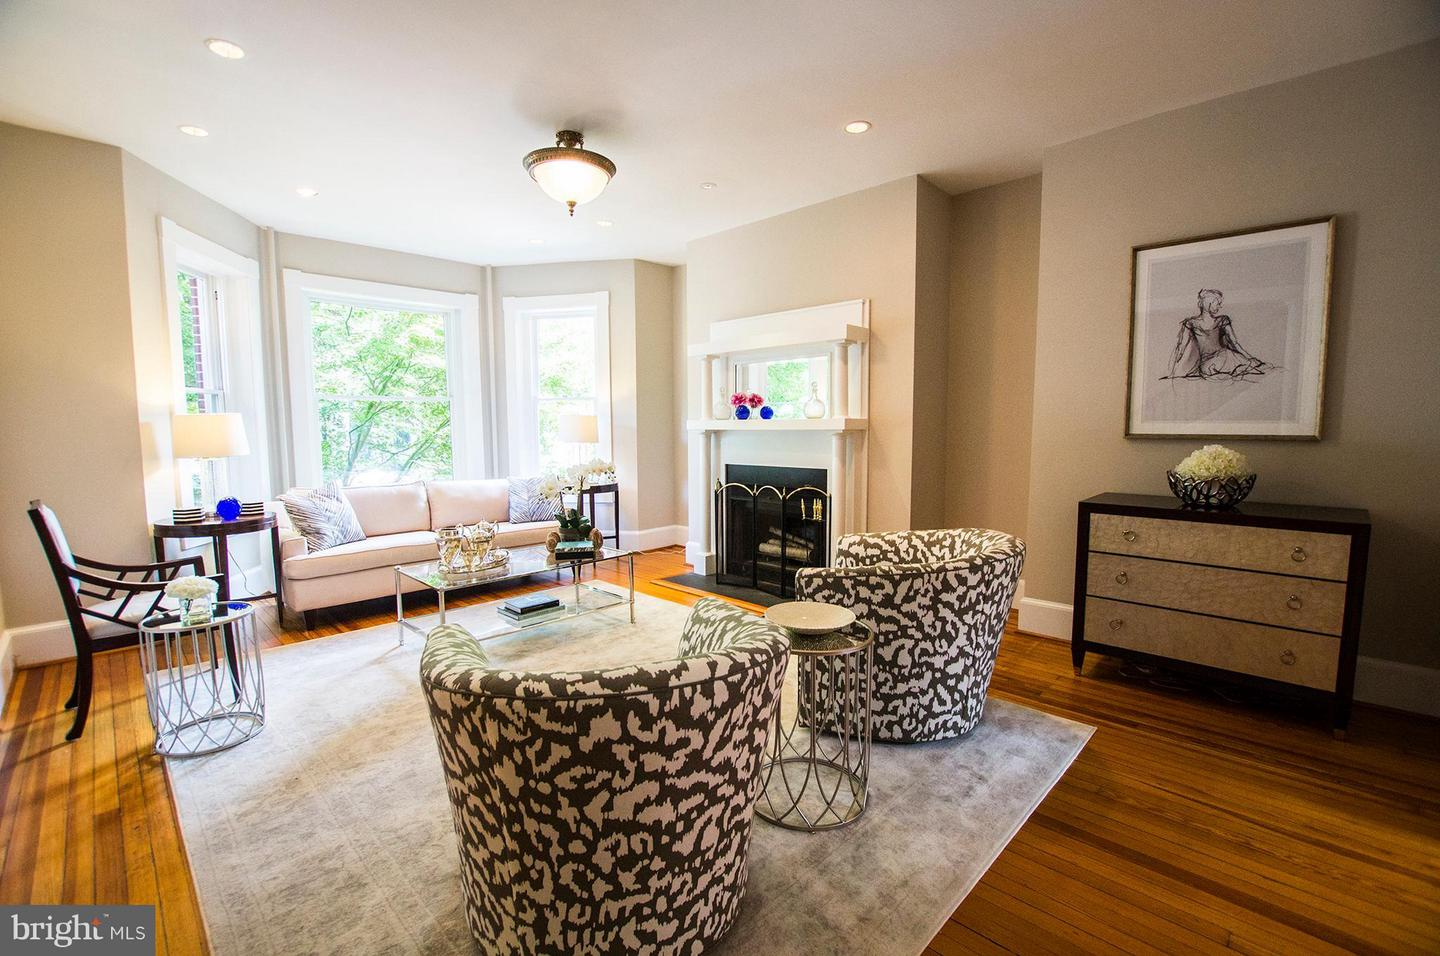 Single Family for Sale at 621 A St NE Washington, District Of Columbia 20002 United States